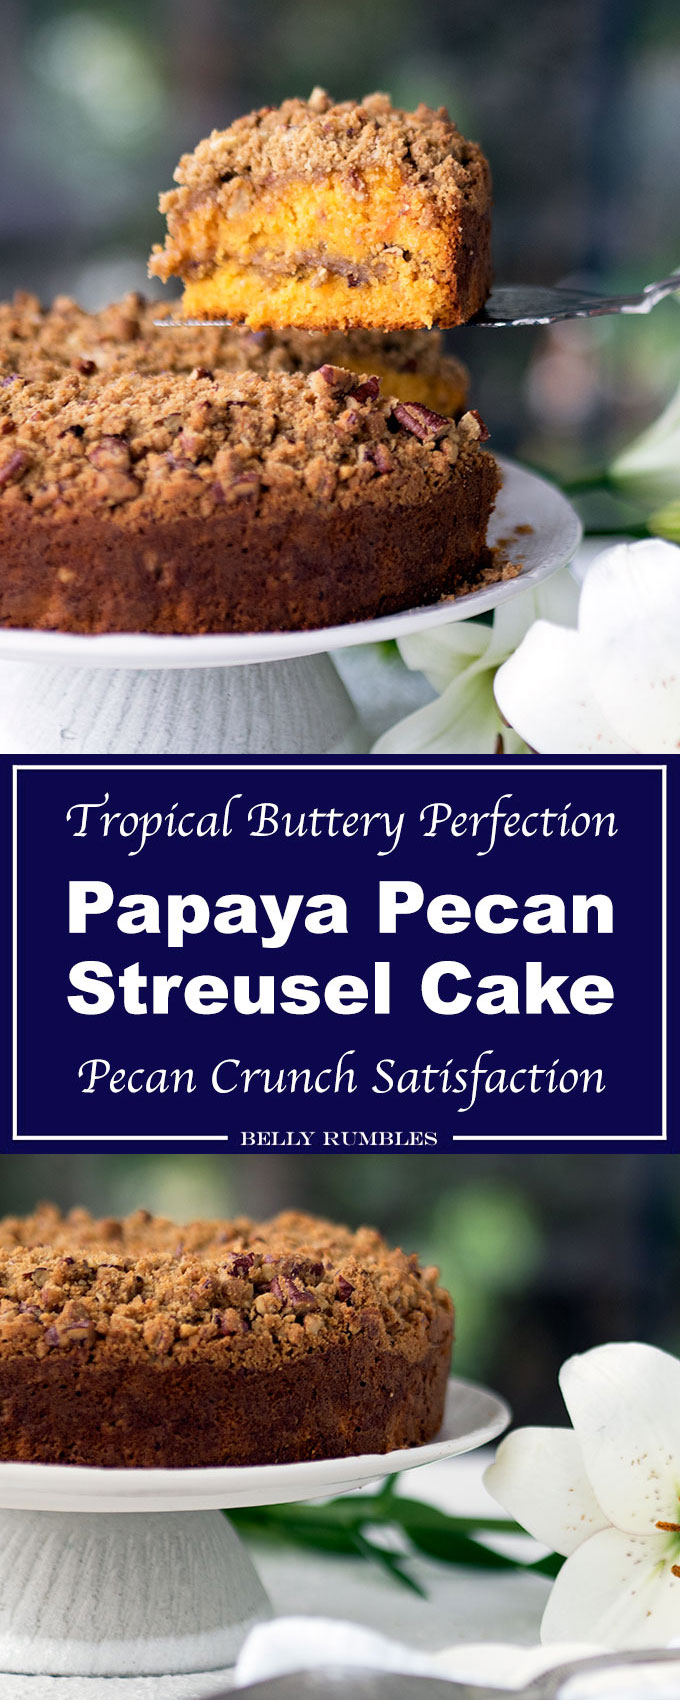 Papaya Pecan Streusel Cake Recipe, and moist, with a crunchy pecan streusel topping. Plus a gorgeous orange hue from Australian red papaya.